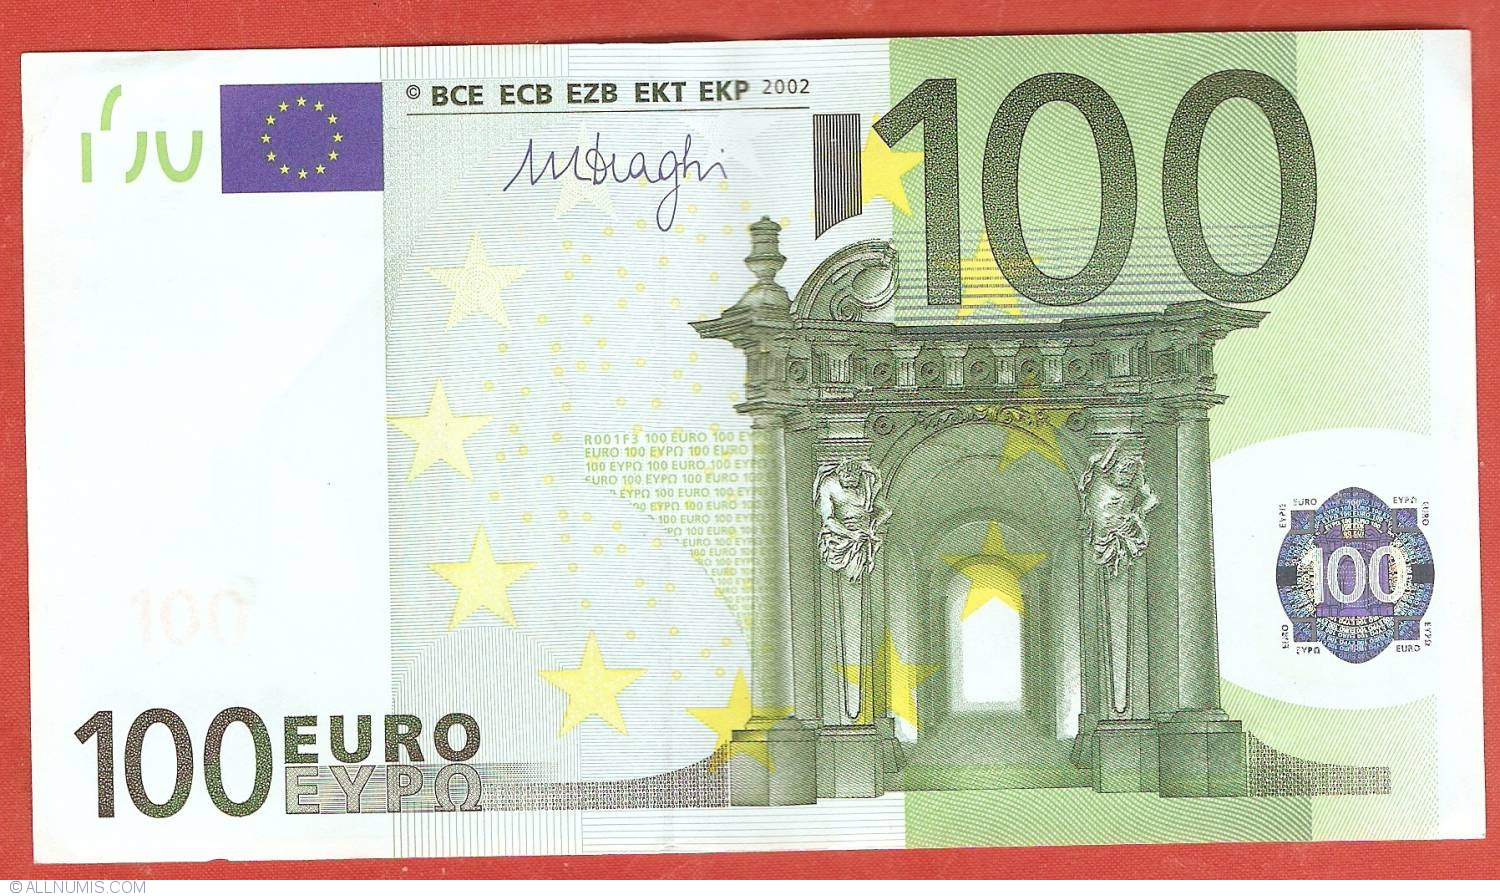 100 Euro 2002 X Germany 5174 furthermore Msh Vs Sf additionally Moroccan Lantern moreover Blue Zircon 31 as well G O Lease Map. on gem list